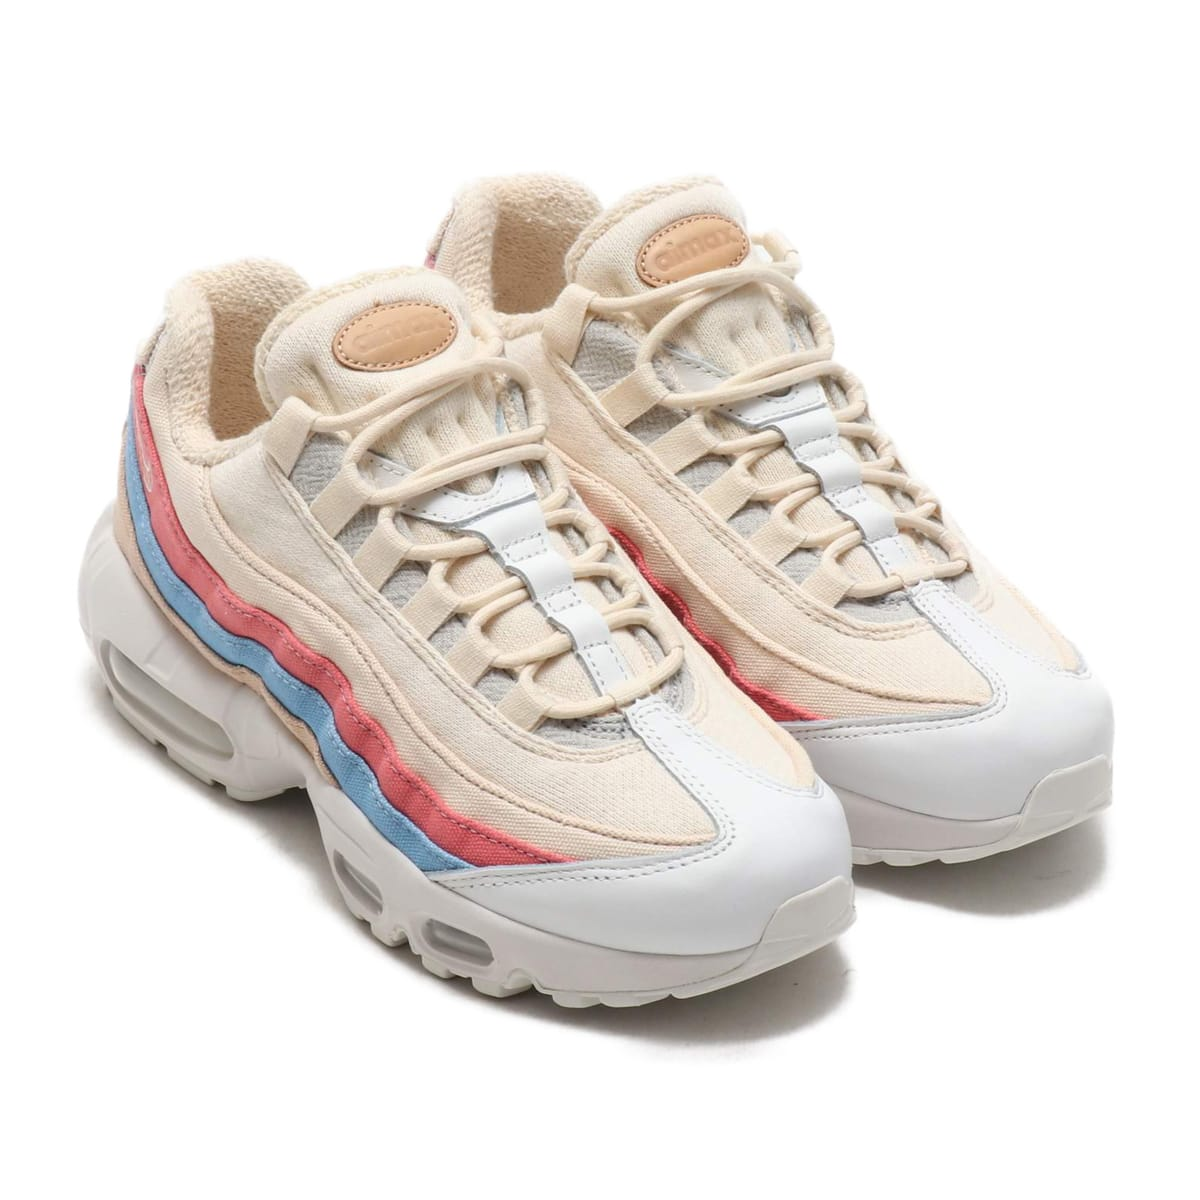 NIKE WMNS AIR MAX 95 QS CRIMSON TINT/CORAL STARDUST-HALF BLUE 19SU-S_photo_large